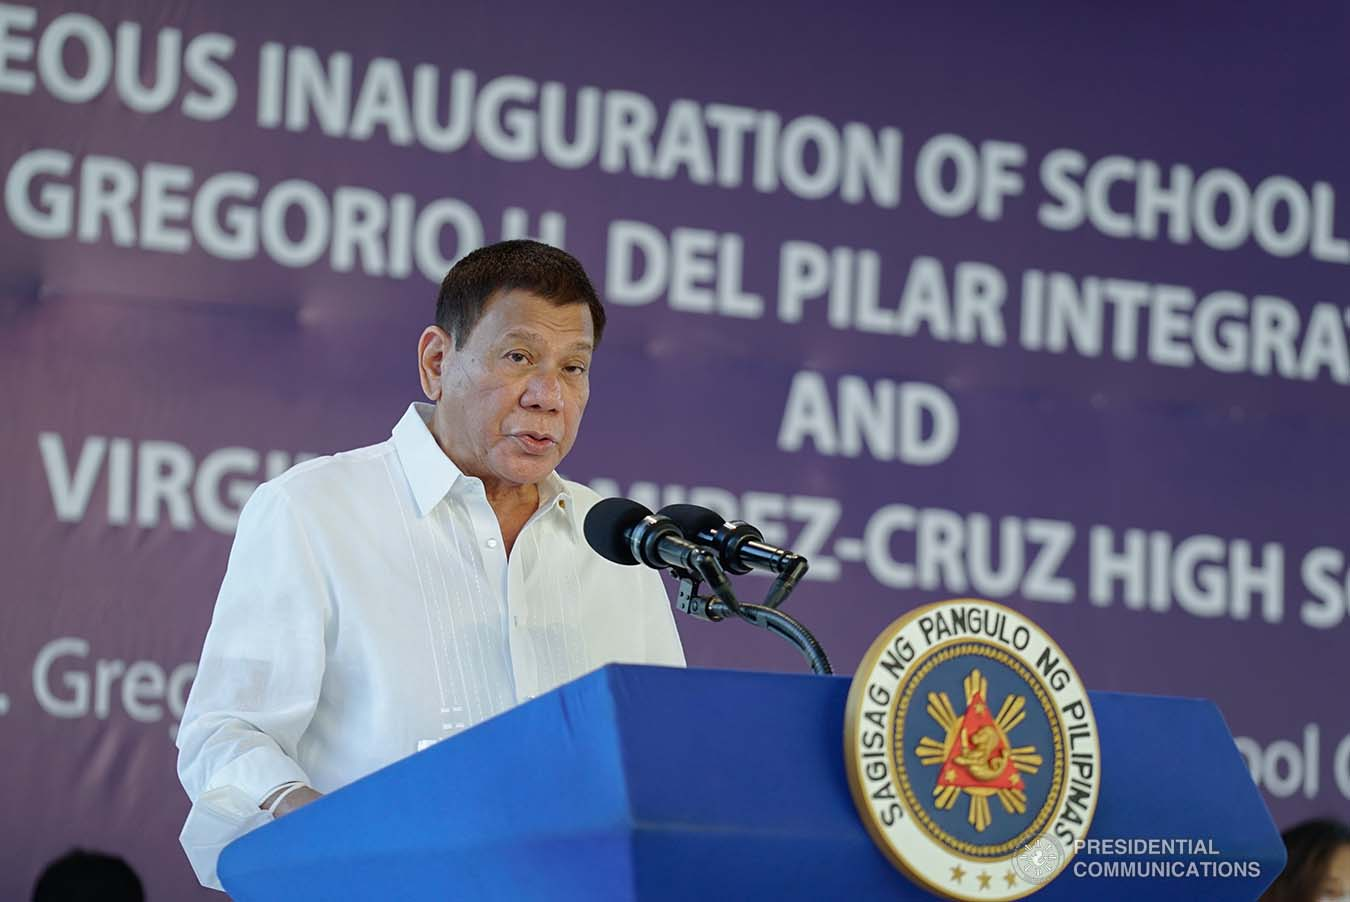 President Rodrigo Roa Duterte delivers his speech during the inauguration of the newly constructed Gen. Gregorio H. Del Pilar Integrated School and Virginia Ramirez-Cruz High School buildings in Bulakan, Bulacan on March 4, 2021. KING RODRIGUEZ/ PRESIDENTIAL PHOTO